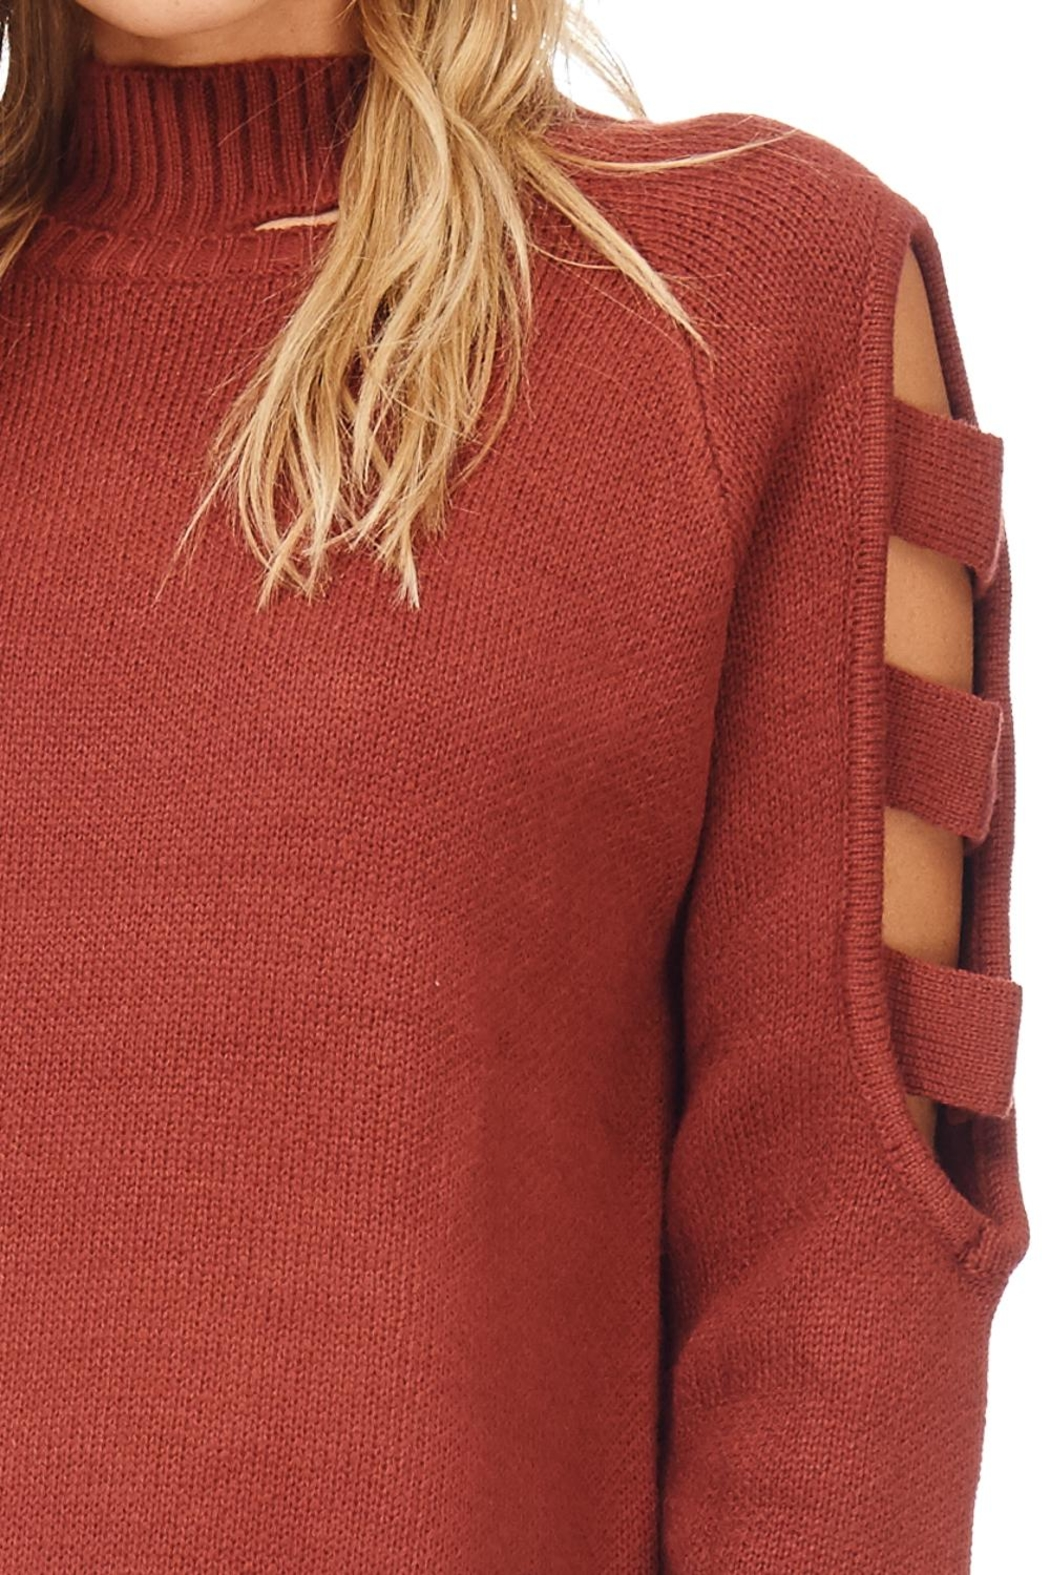 LoveRiche Solid Open Sleeve Sweater - Front Full Image